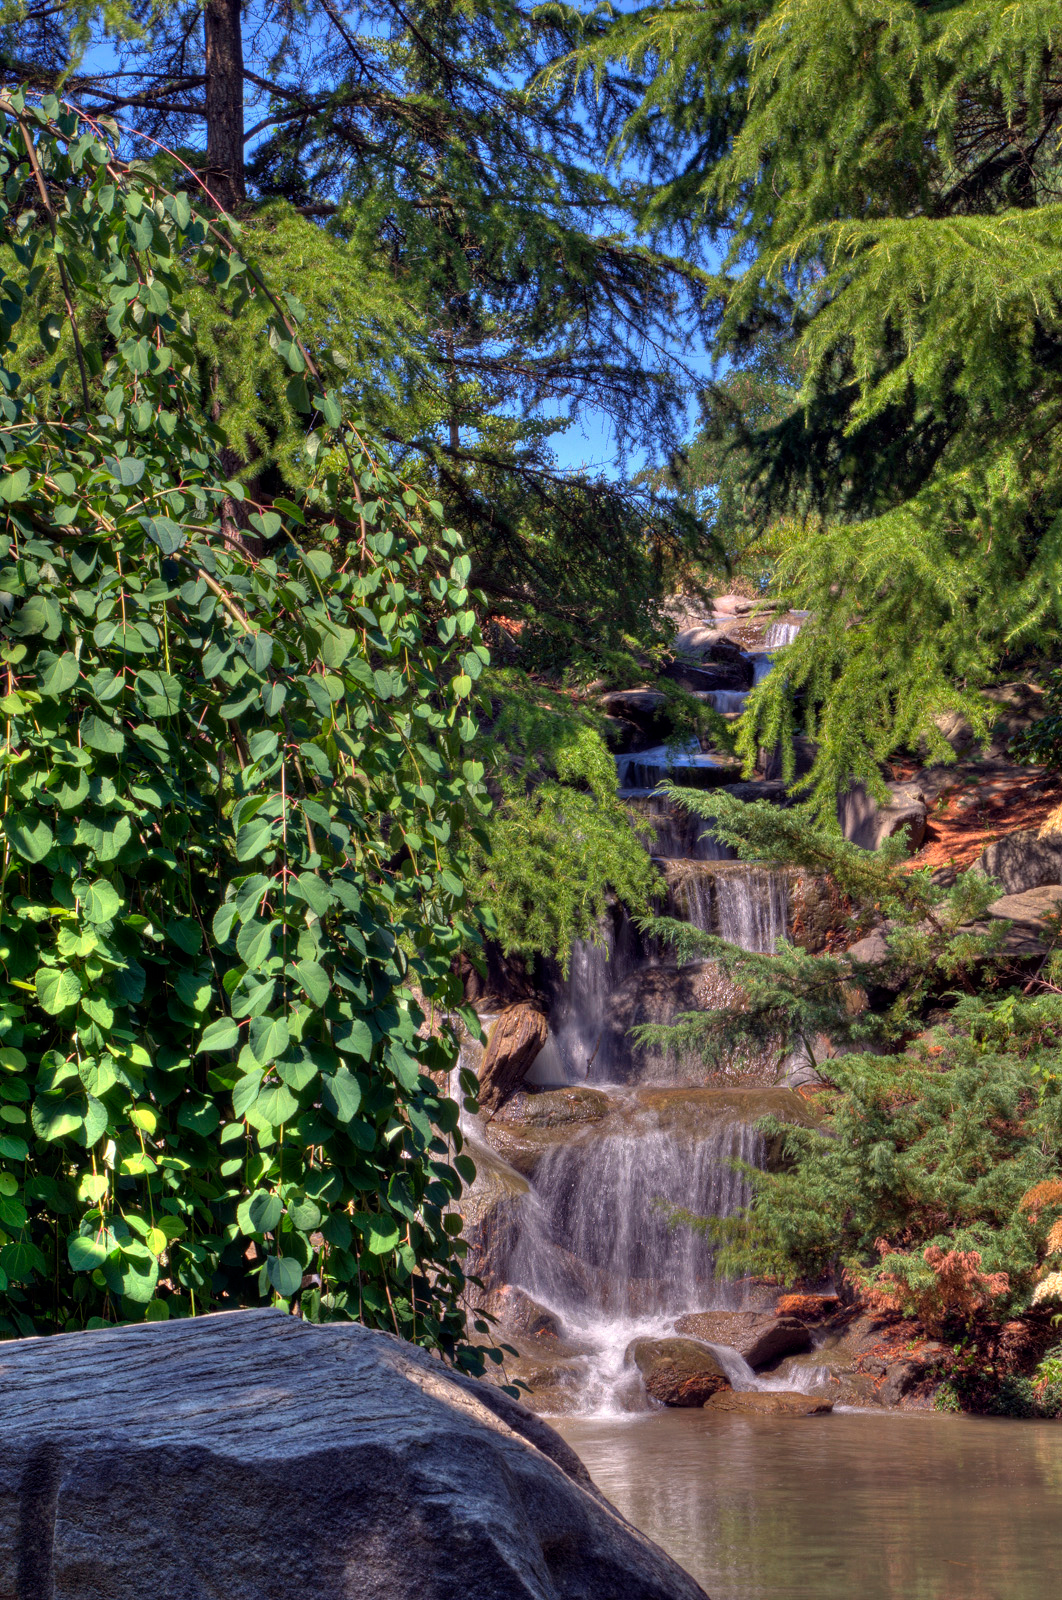 The Waterfall at VanDusen Gardens in Vancouver, BC